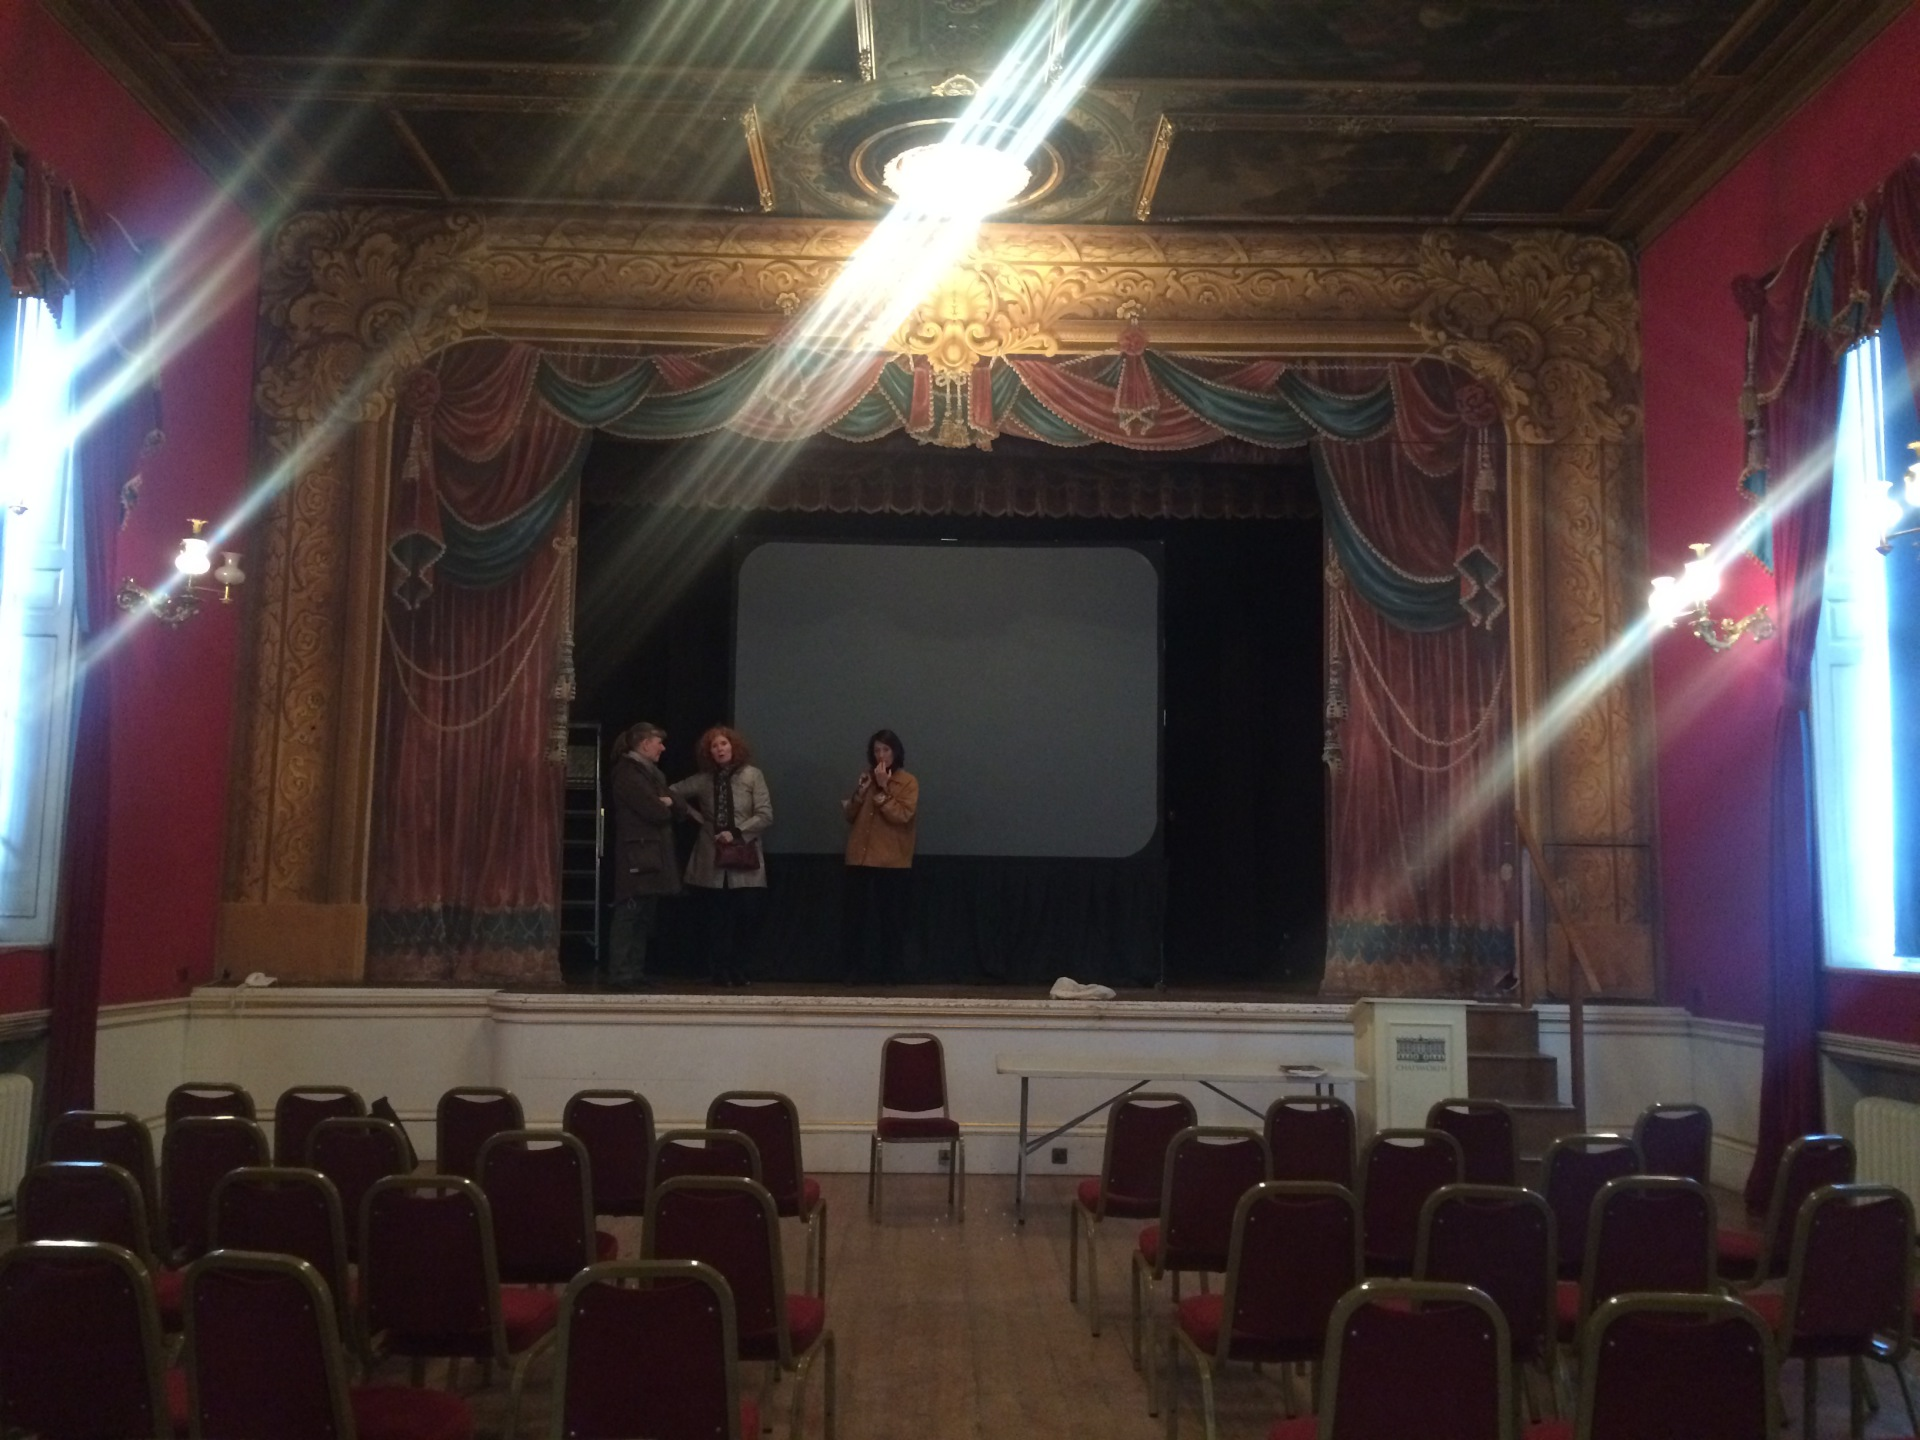 Rehearsals at Chatsworth Theatre